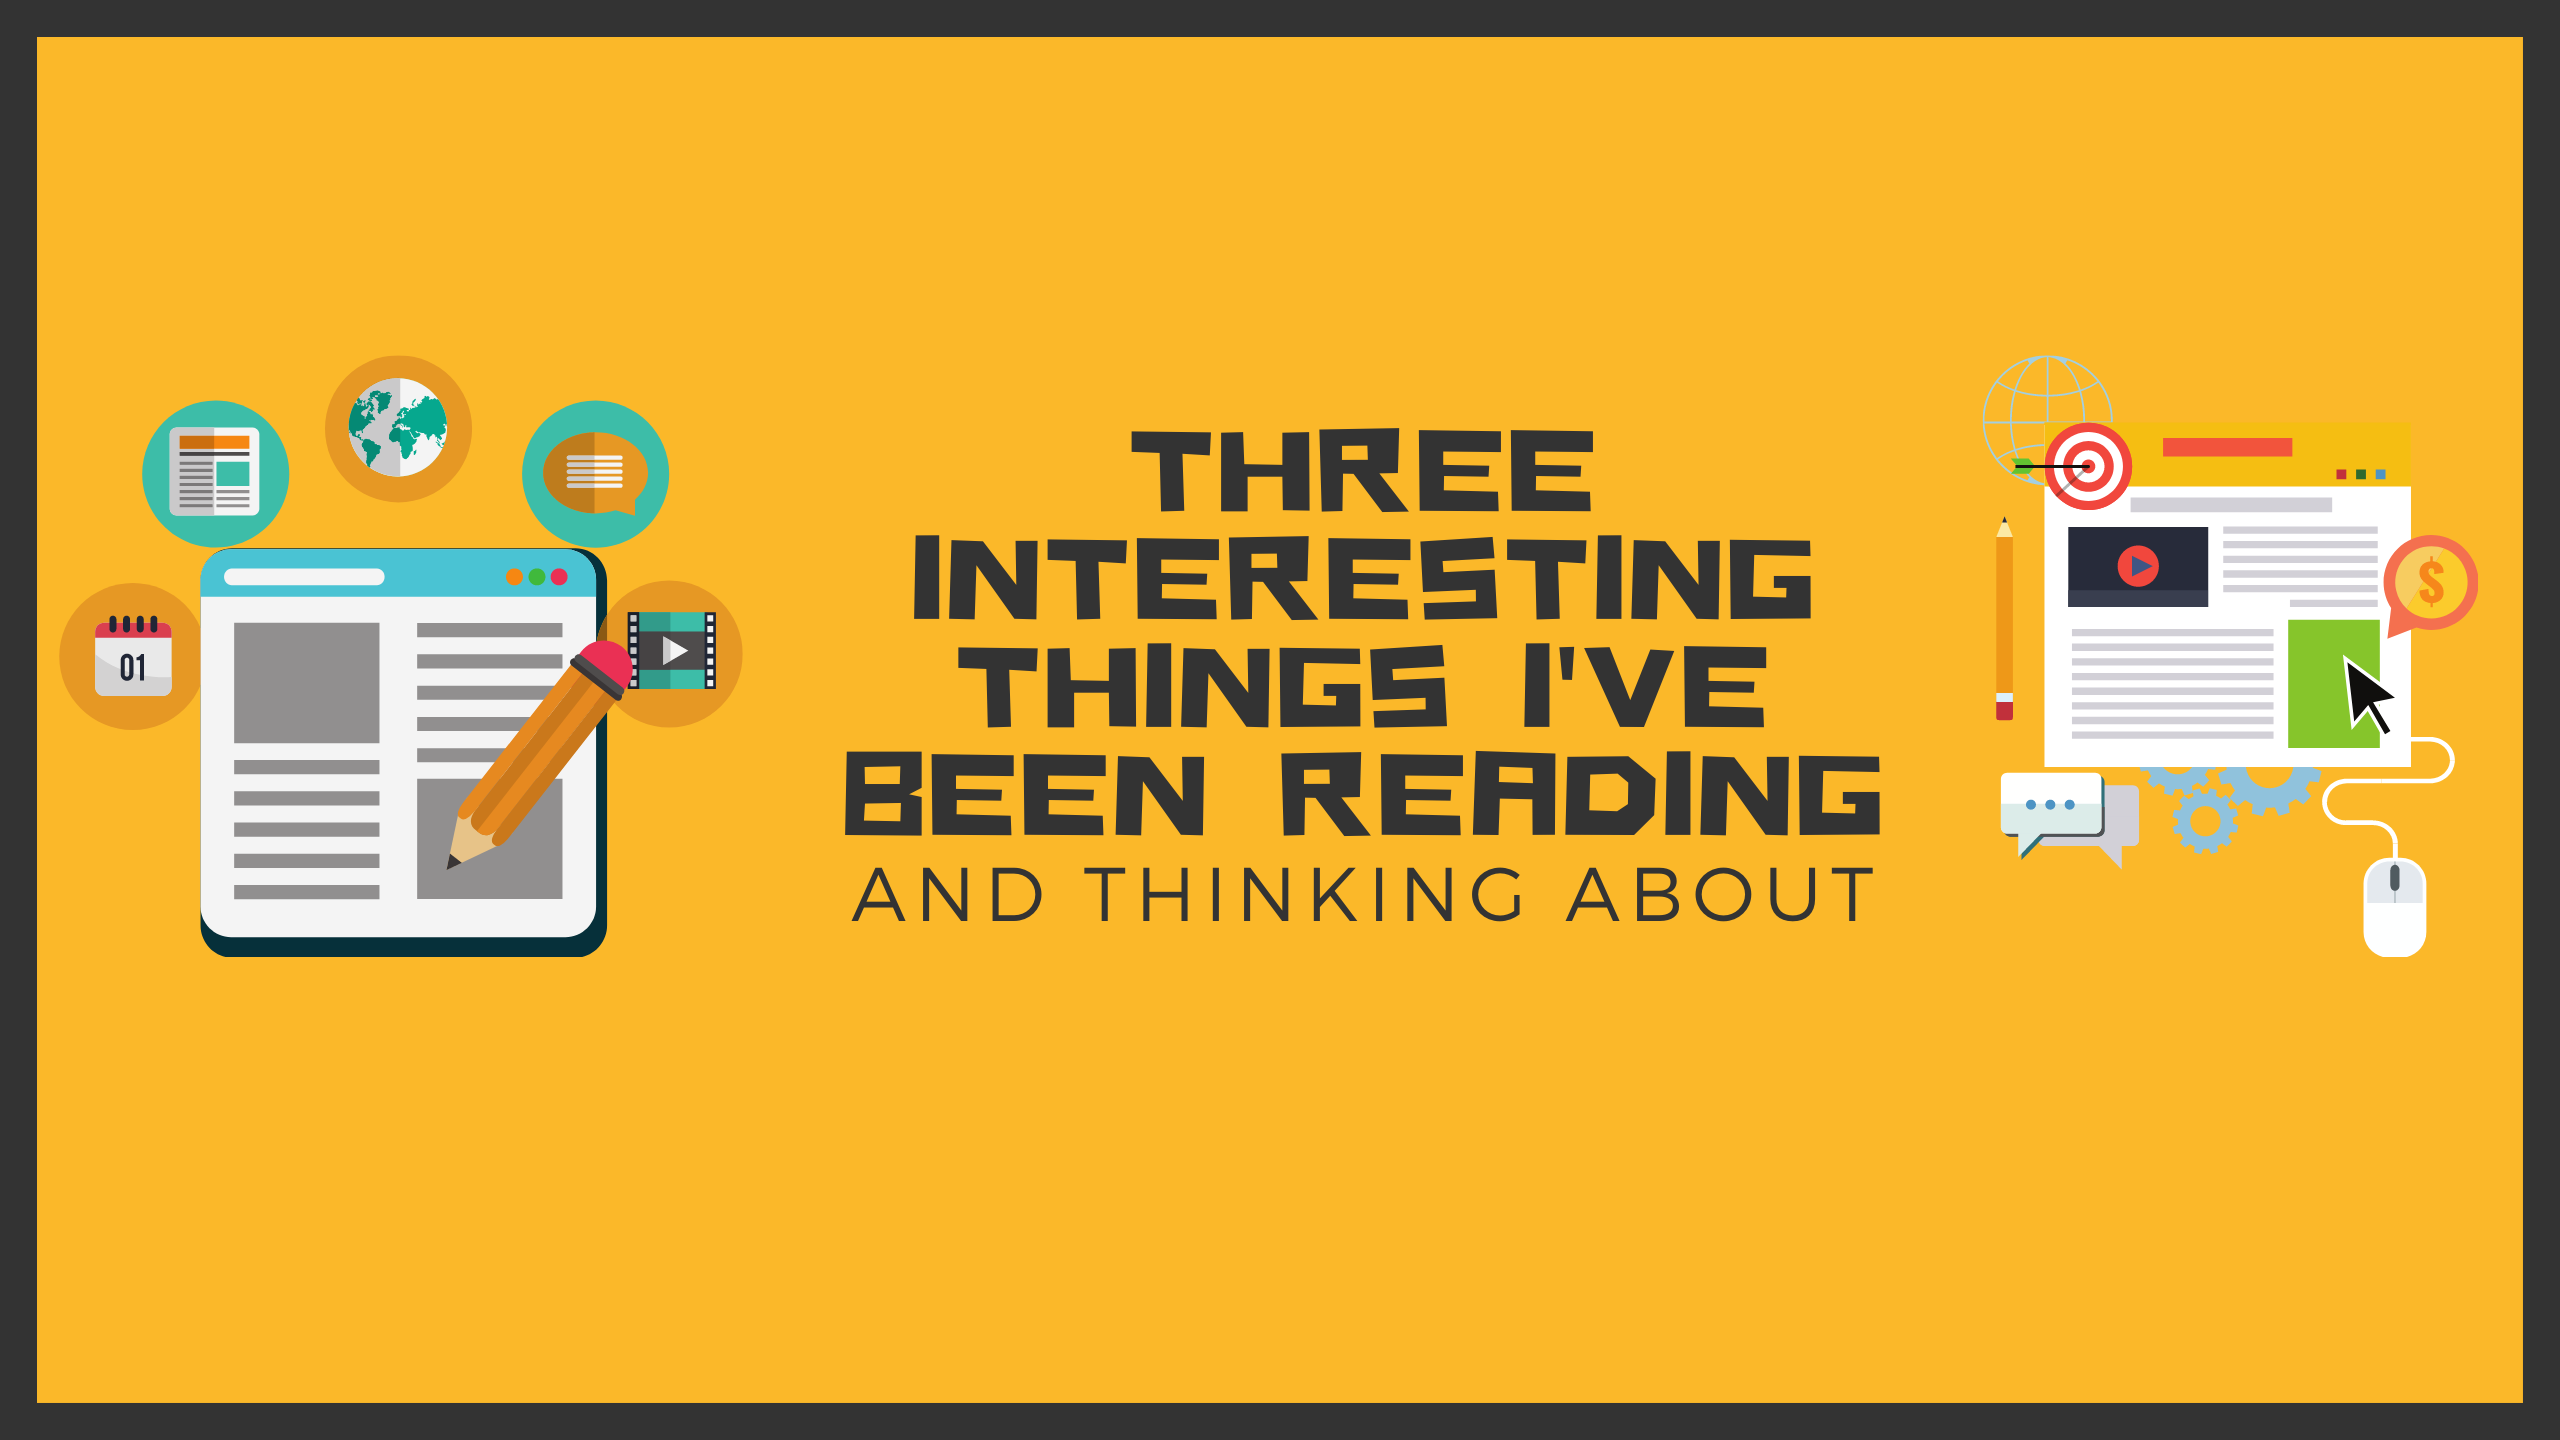 Cover image for three interesting things I've been reading and thinking about.